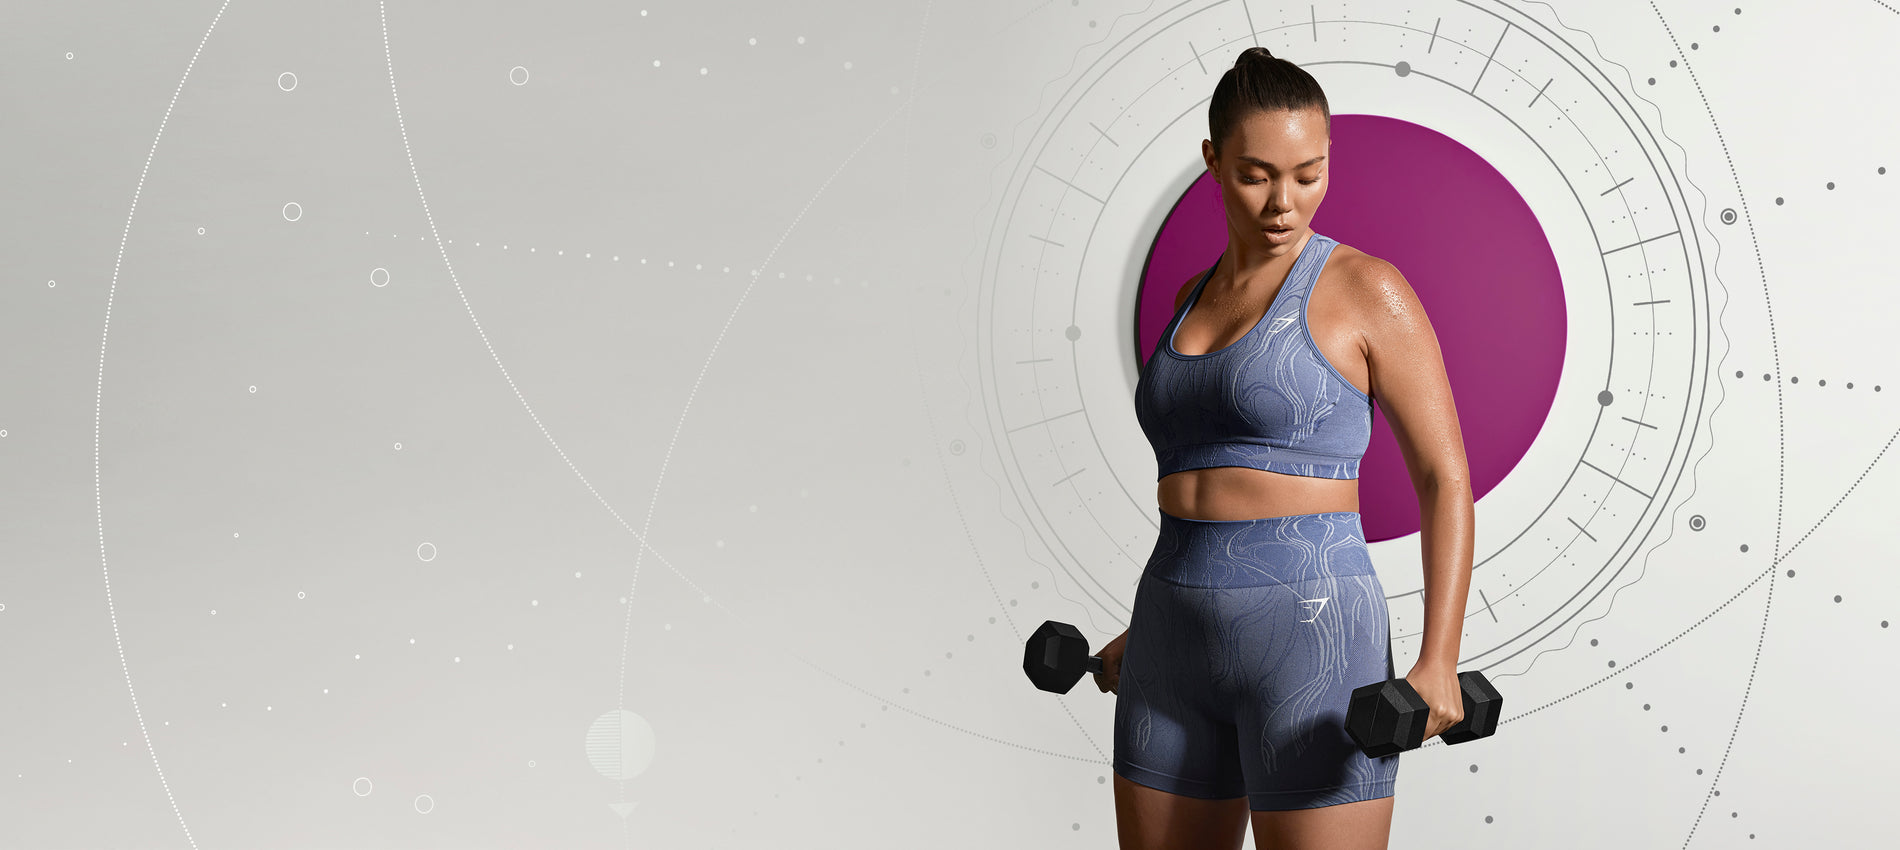 Model posing in front of an astrological background while wearing the new Mercury collection.